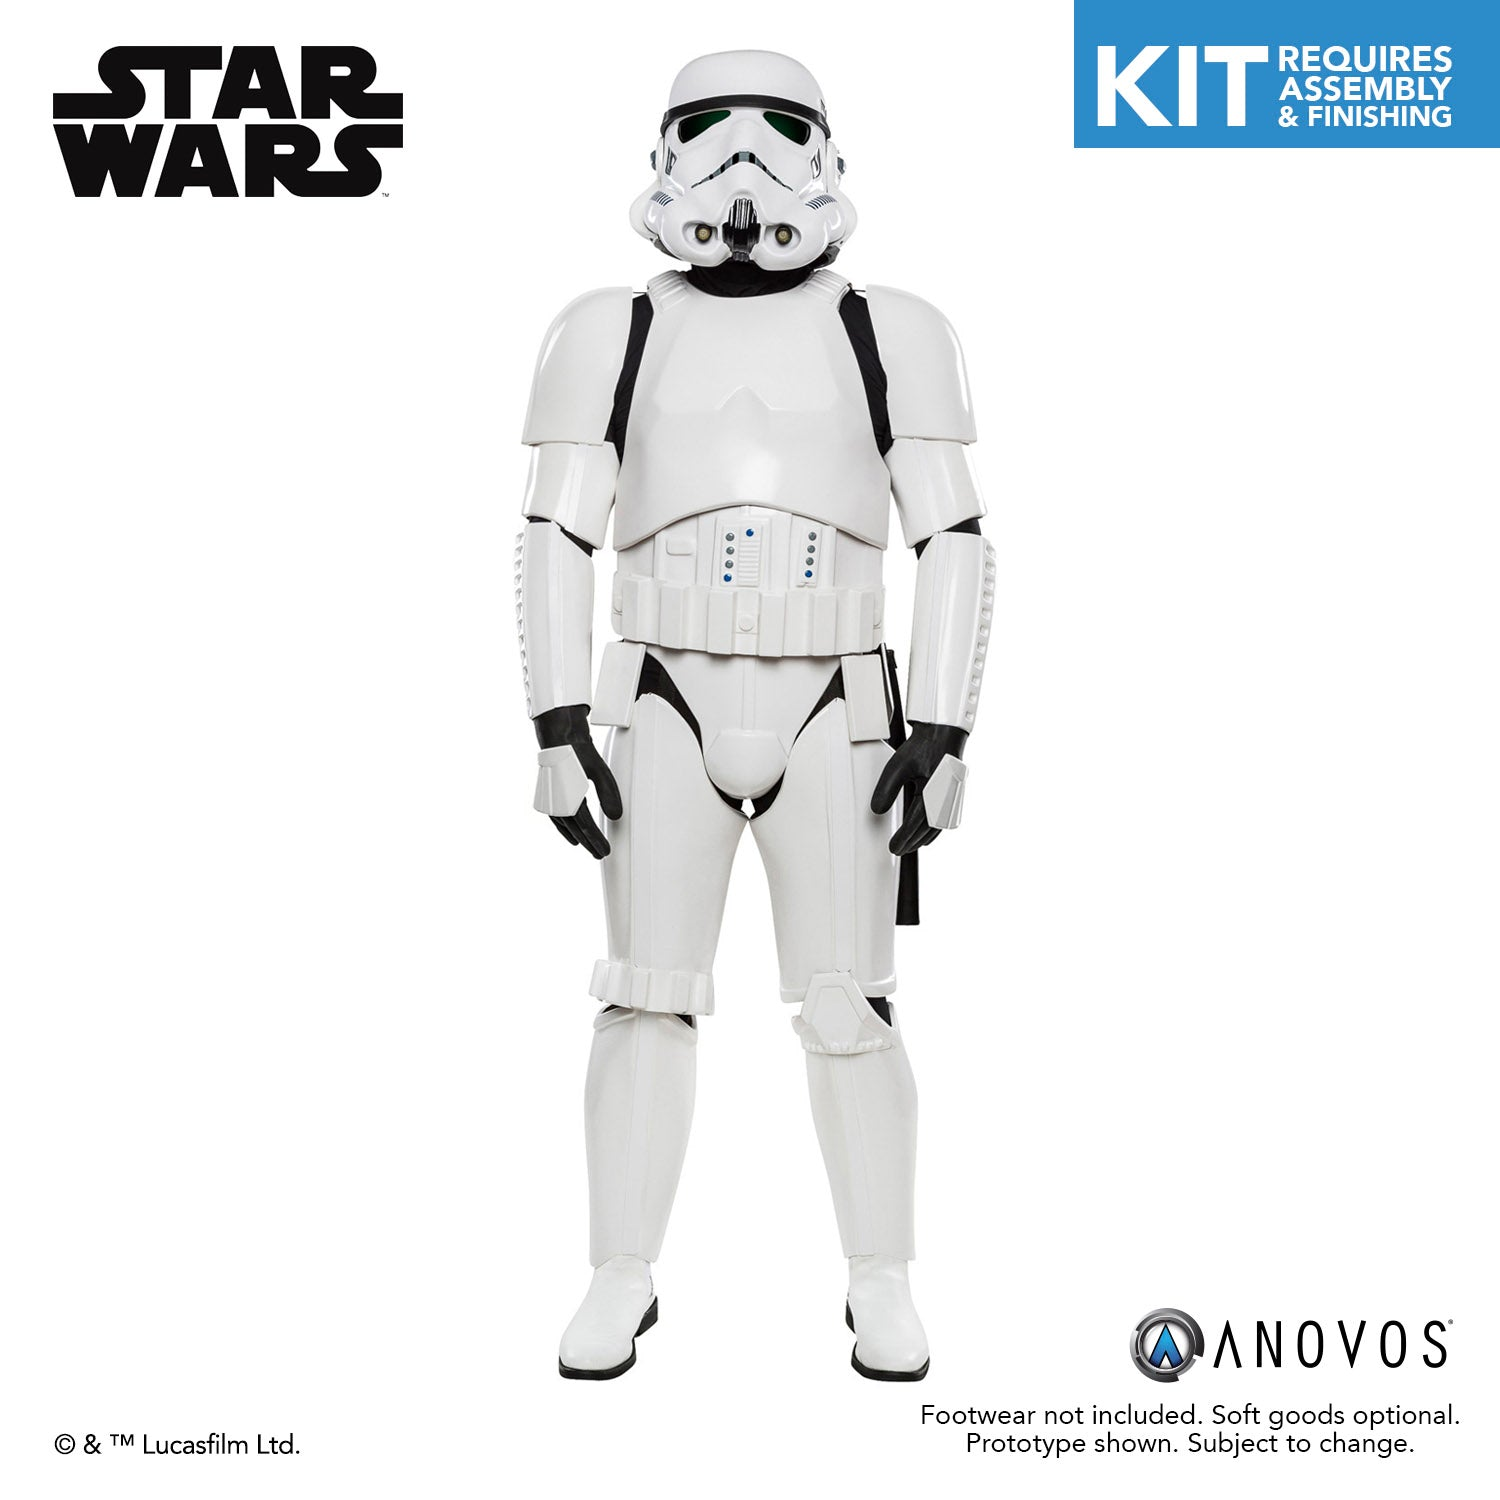 Star Wars Classic Trilogy Imperial Stormtrooper Kit Anovos Productions Llc